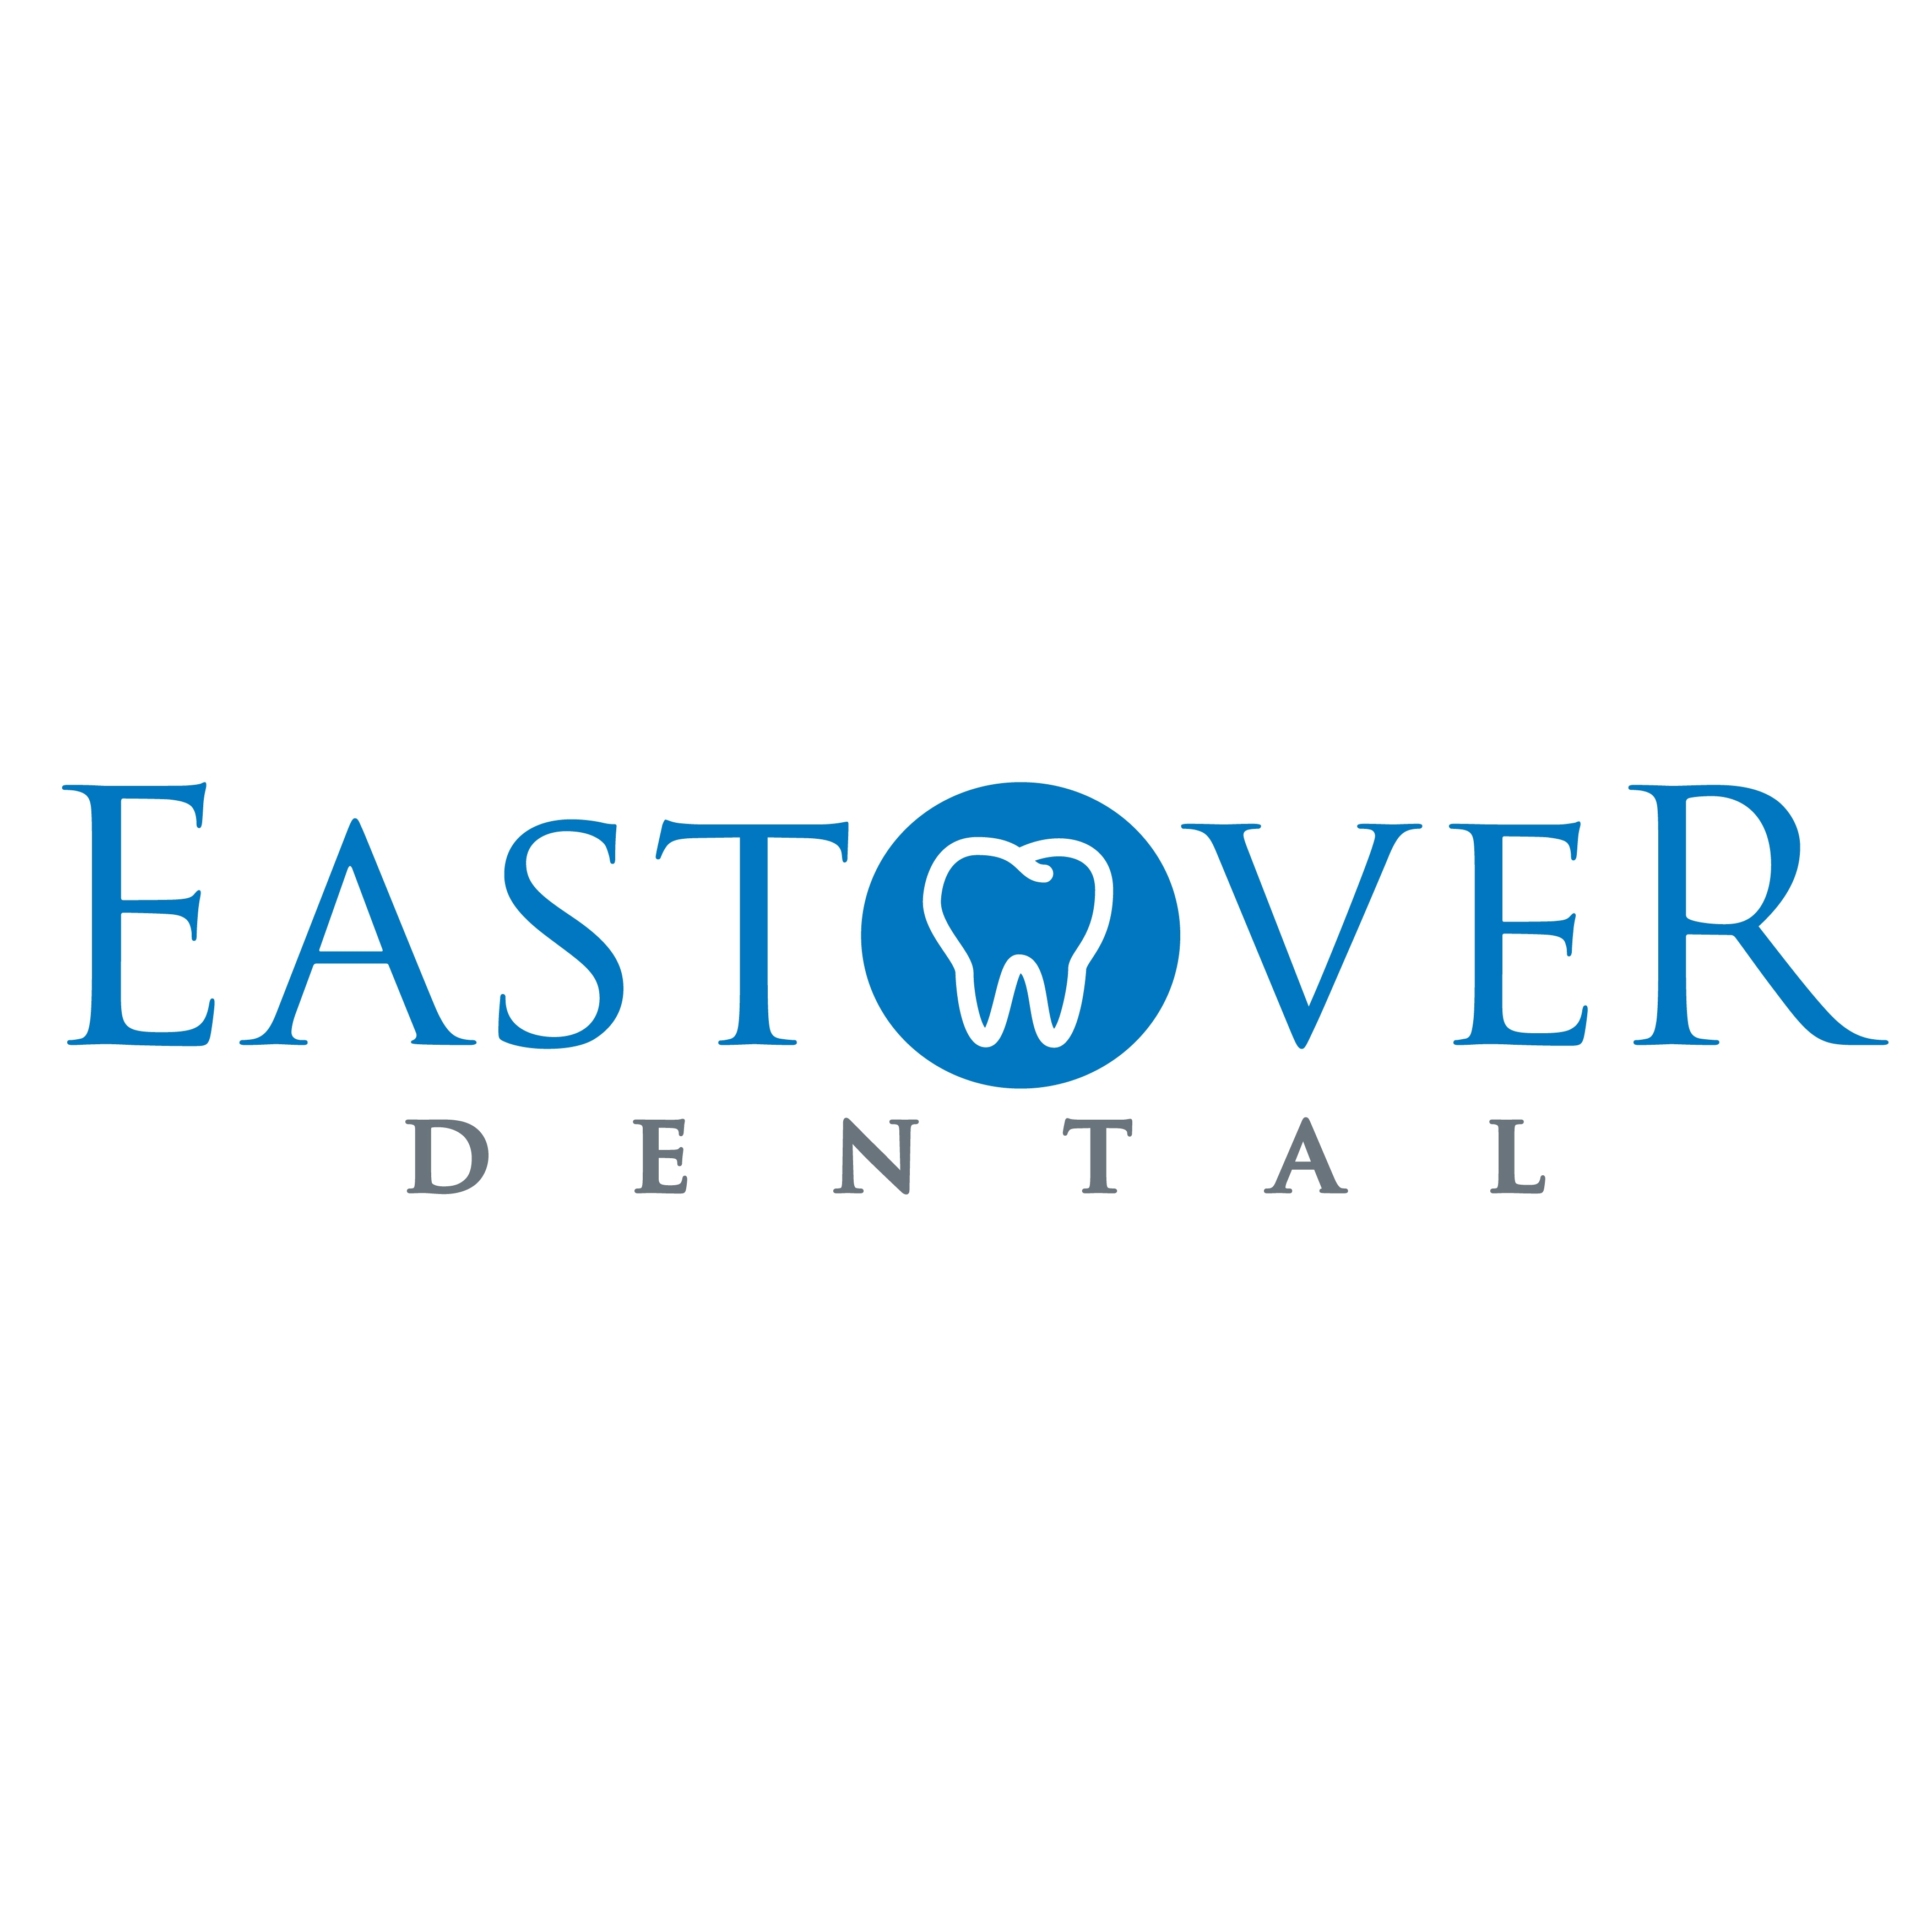 Eastover Dental